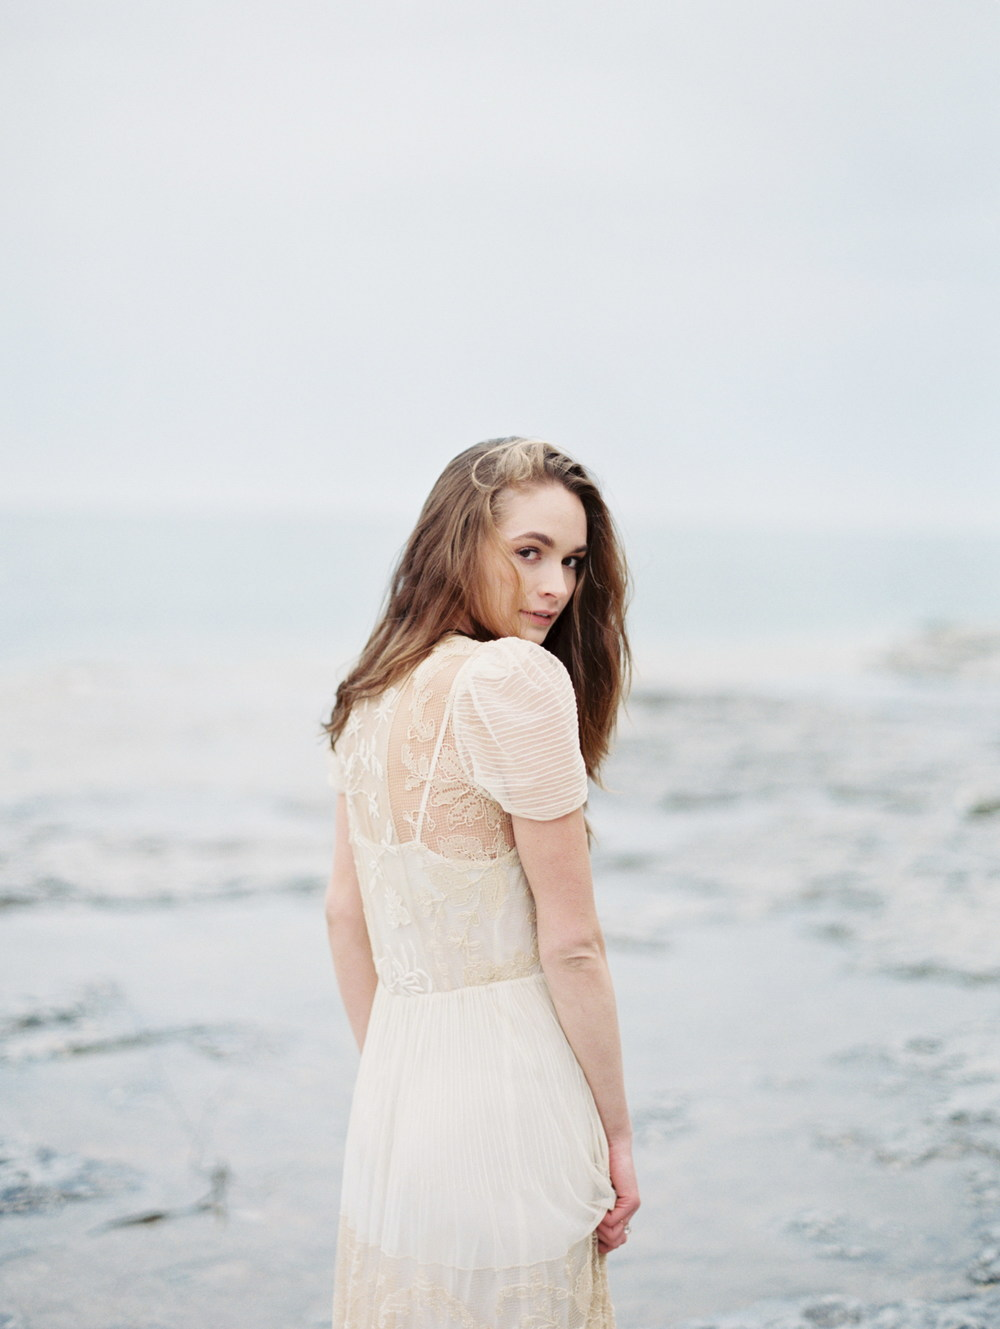 Kyle John l Fine Art Wedding Photography l Chicago, Copenhagen, California, New York, Destination l Blog l Cave Point_15